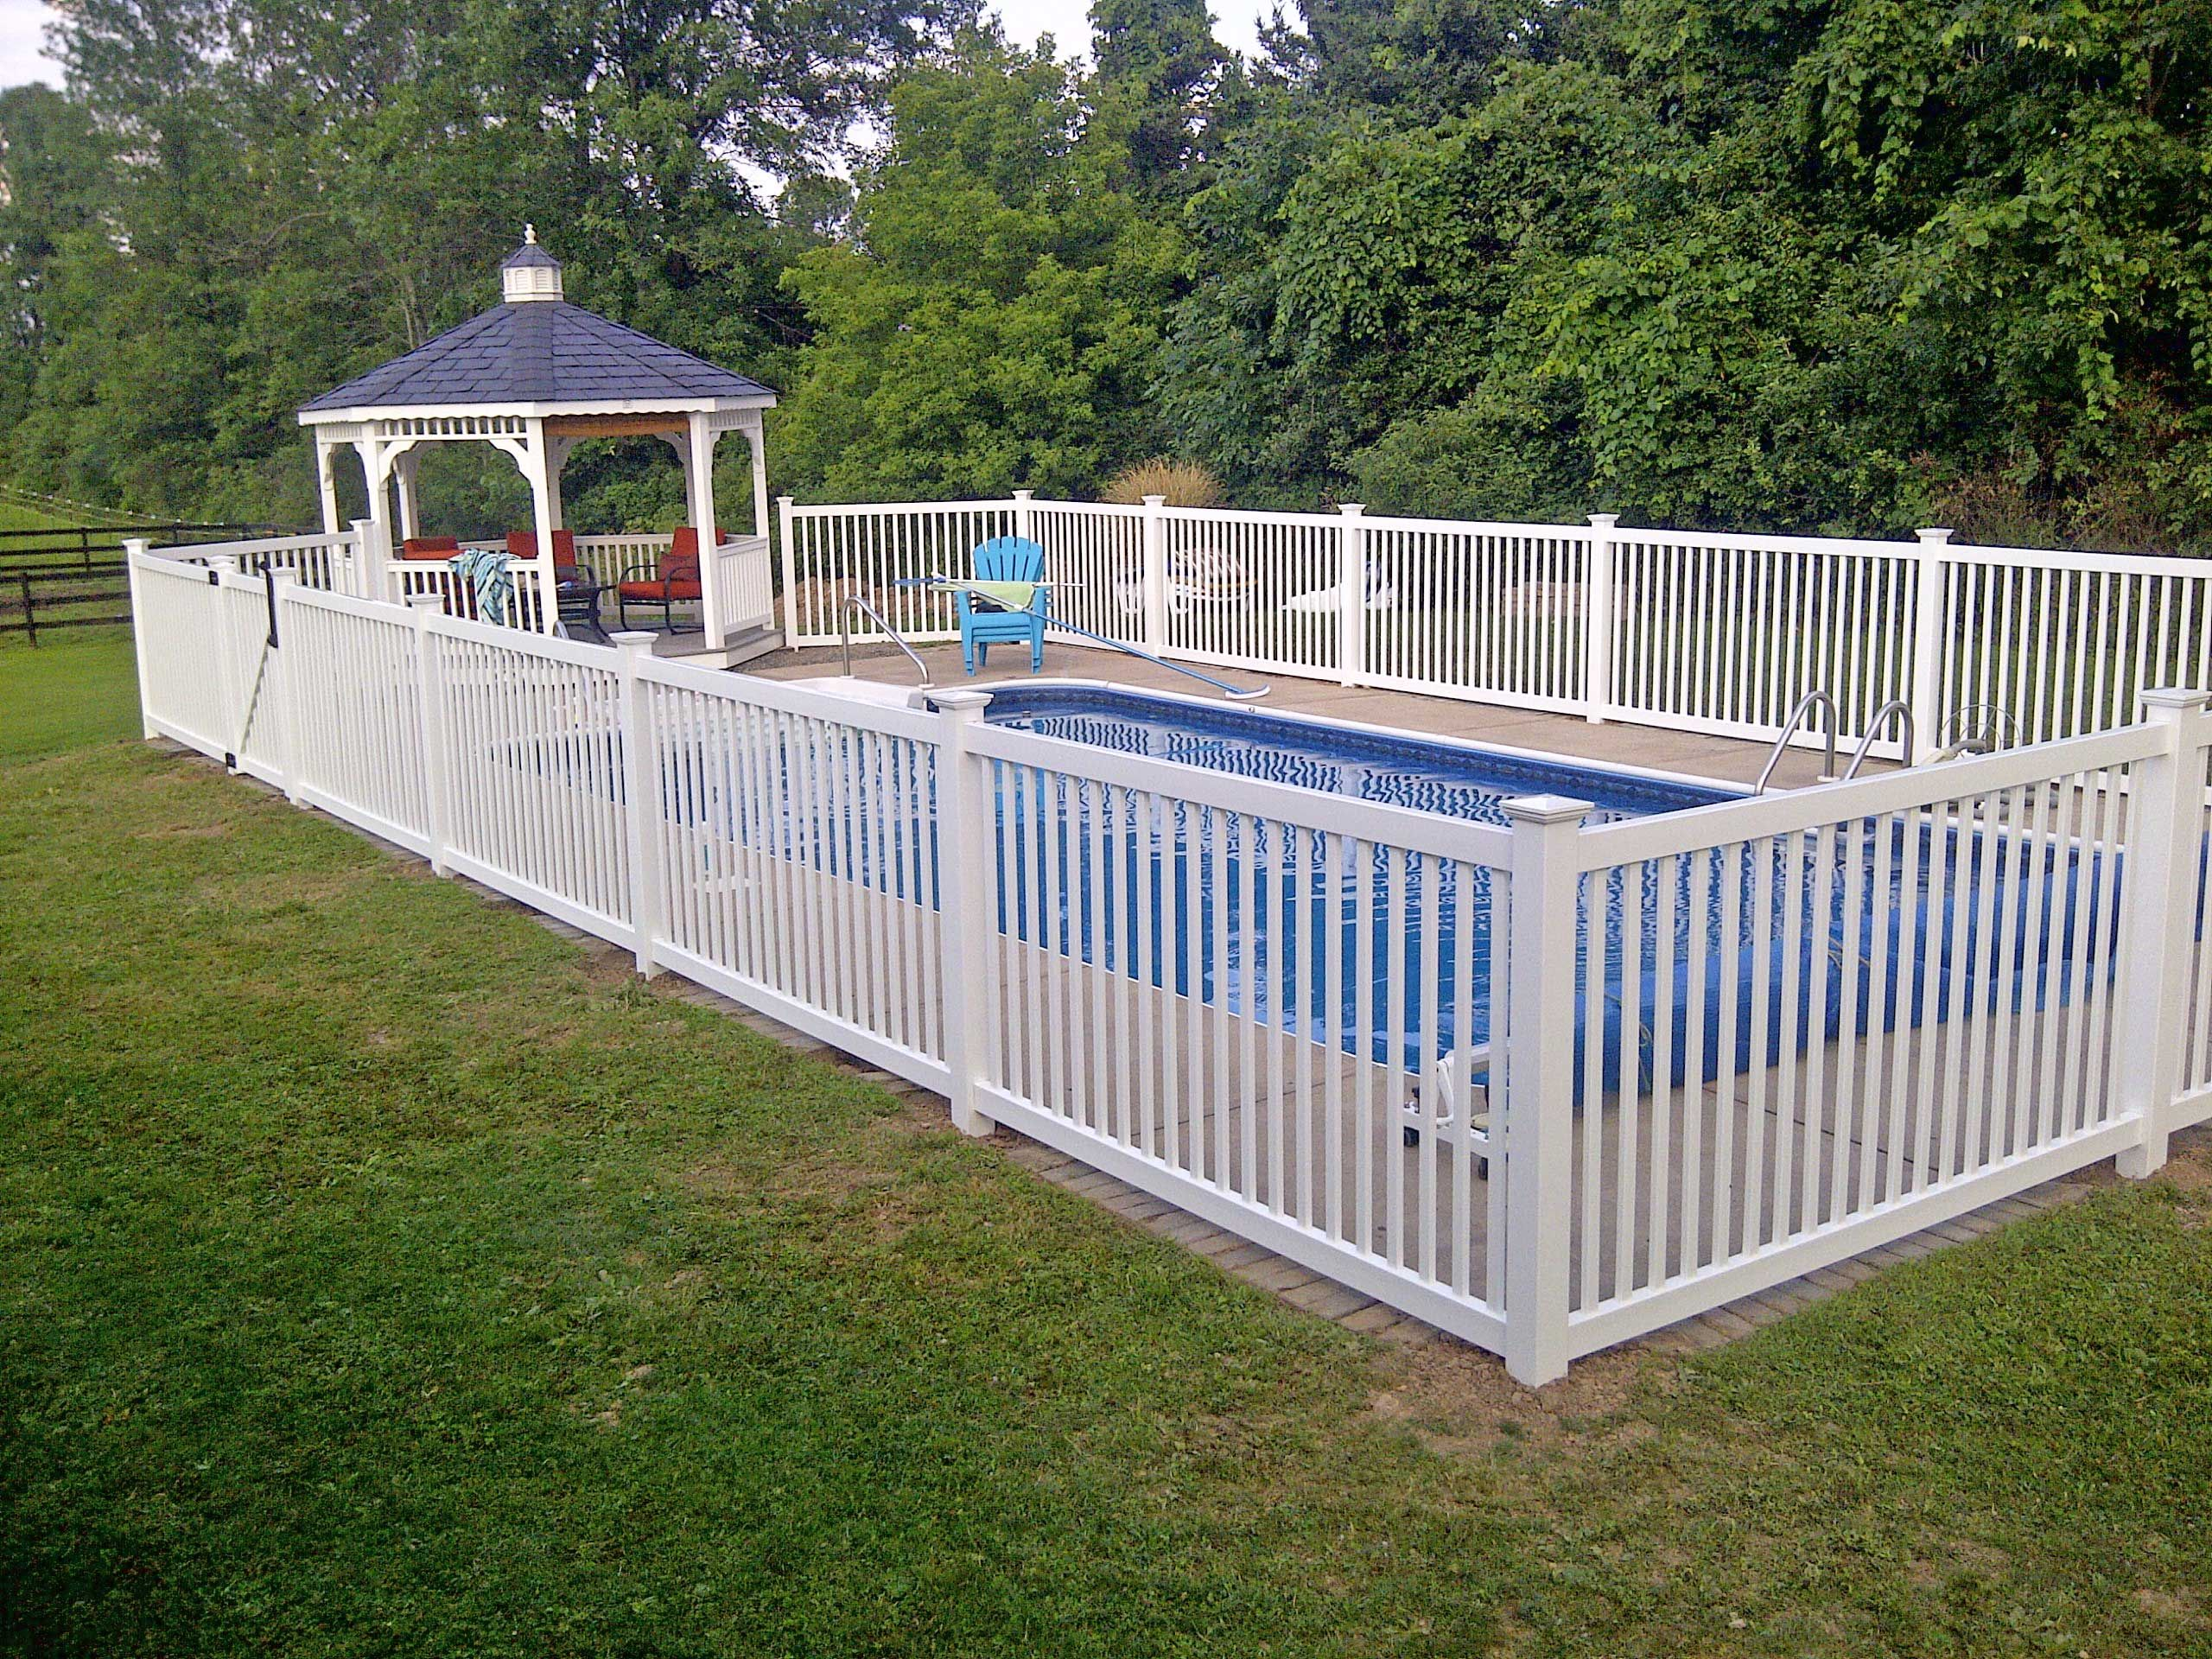 Pool fence ideas | Phillip Ave | Fence around pool, Pool ...